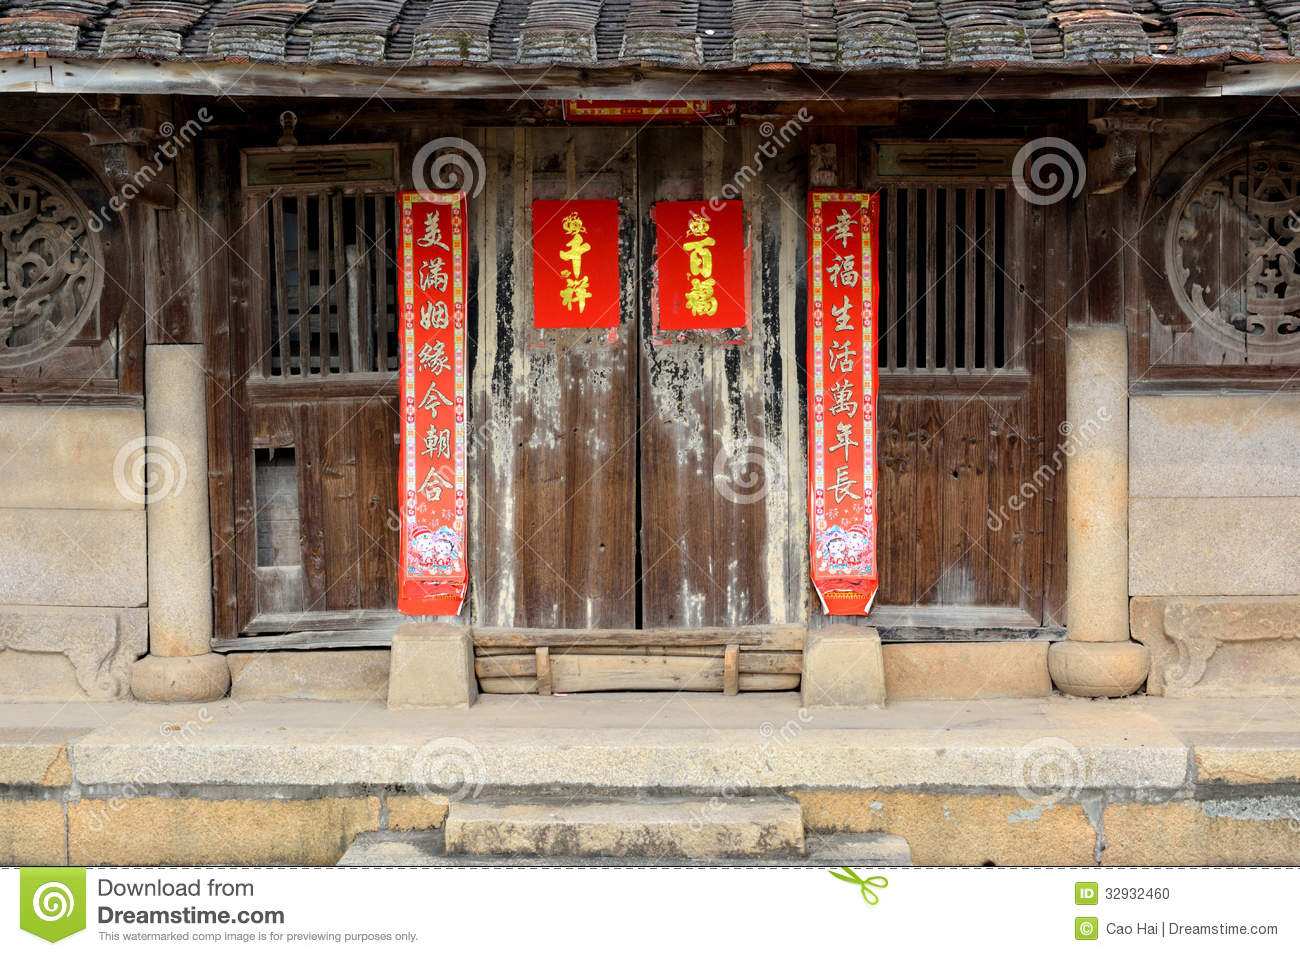 Editorial Stock Photo & Door Of Aged And Traditional Residence In Countryside Of South Of ... pezcame.com